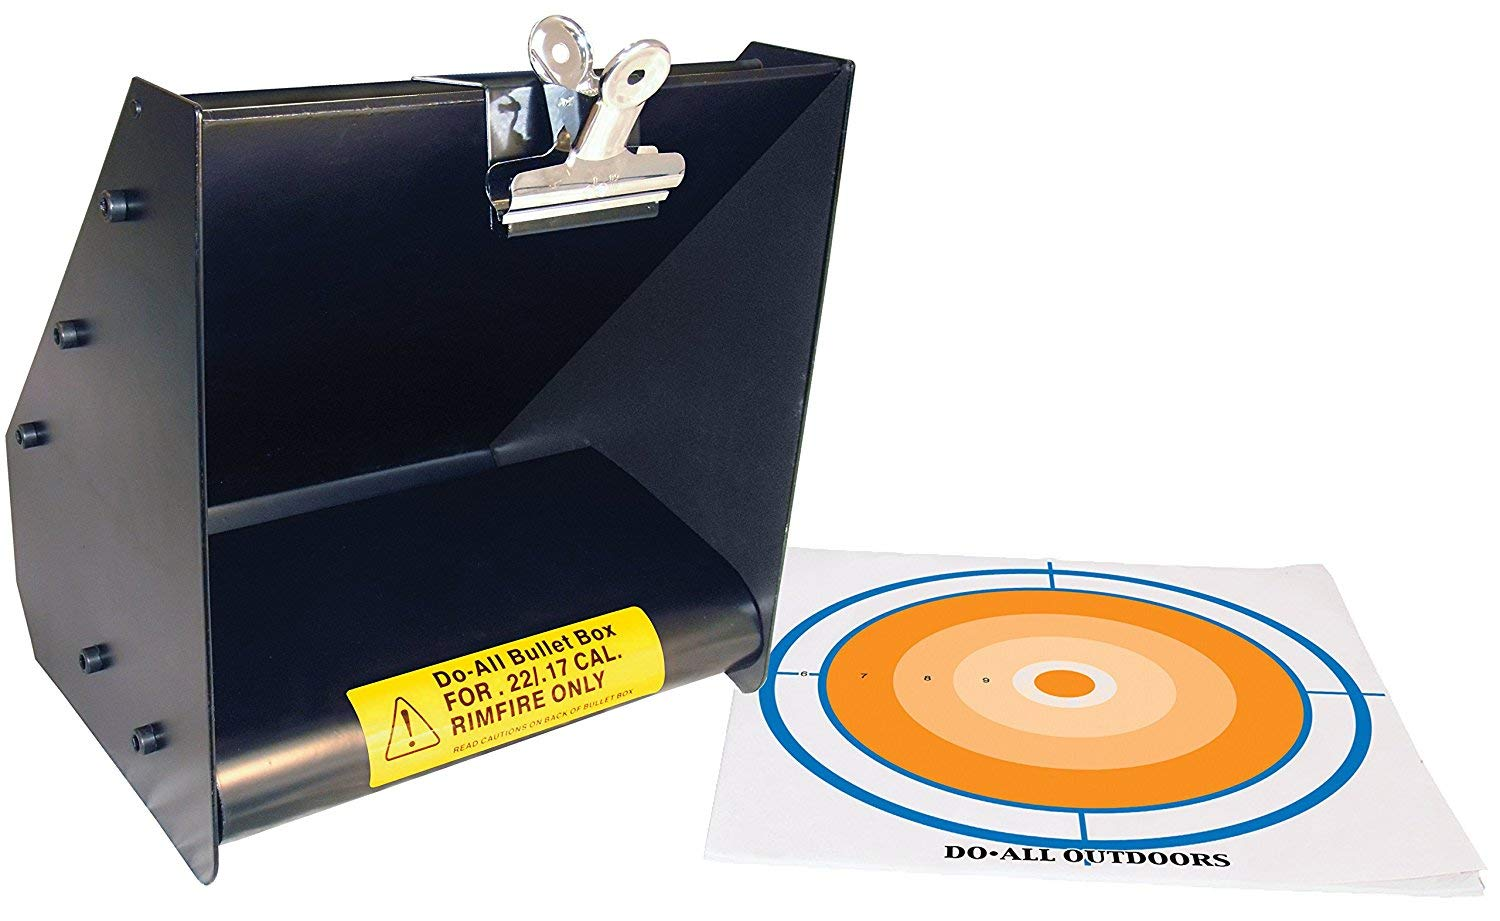 Do-All Outdoors - Bullet Box, Rated for .22/.17 Caliber (2-Units)